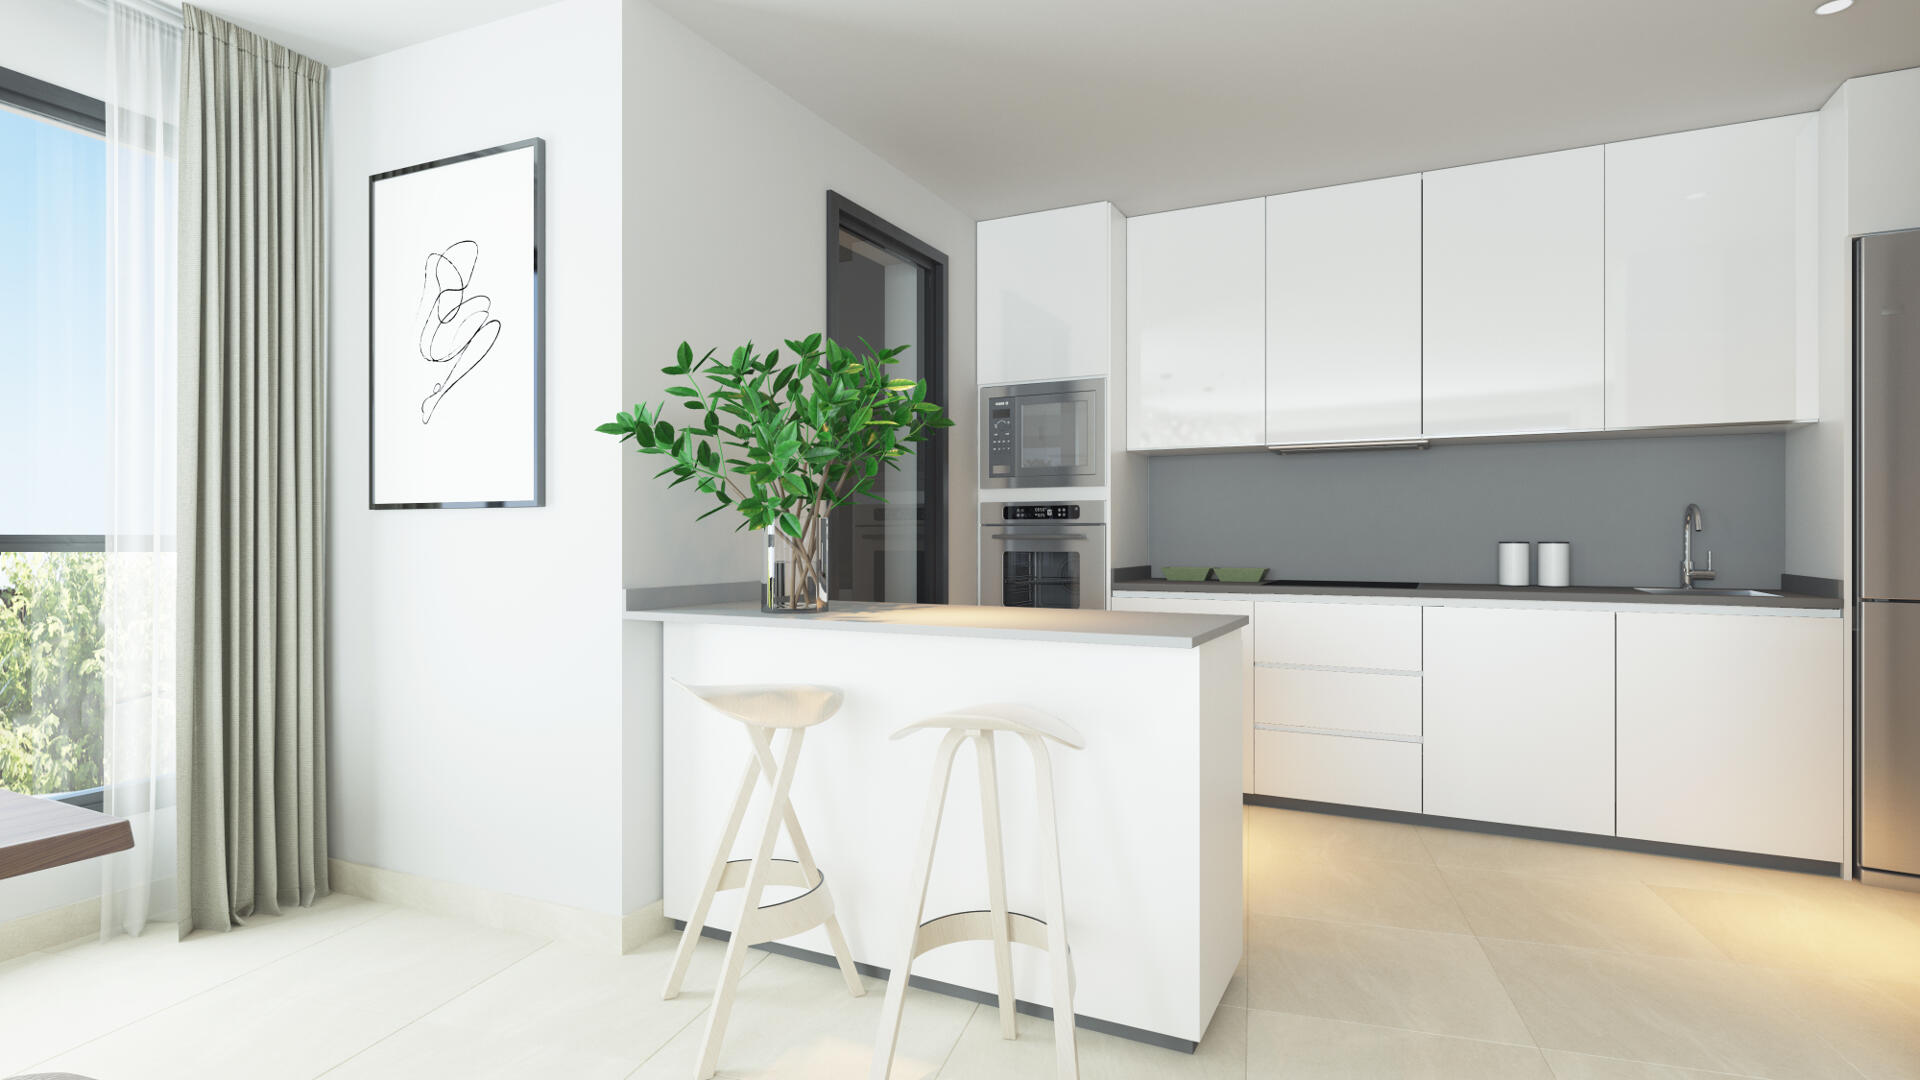 Dora Maar new city apartment with 3 bedrooms in San Pedro, Marbella